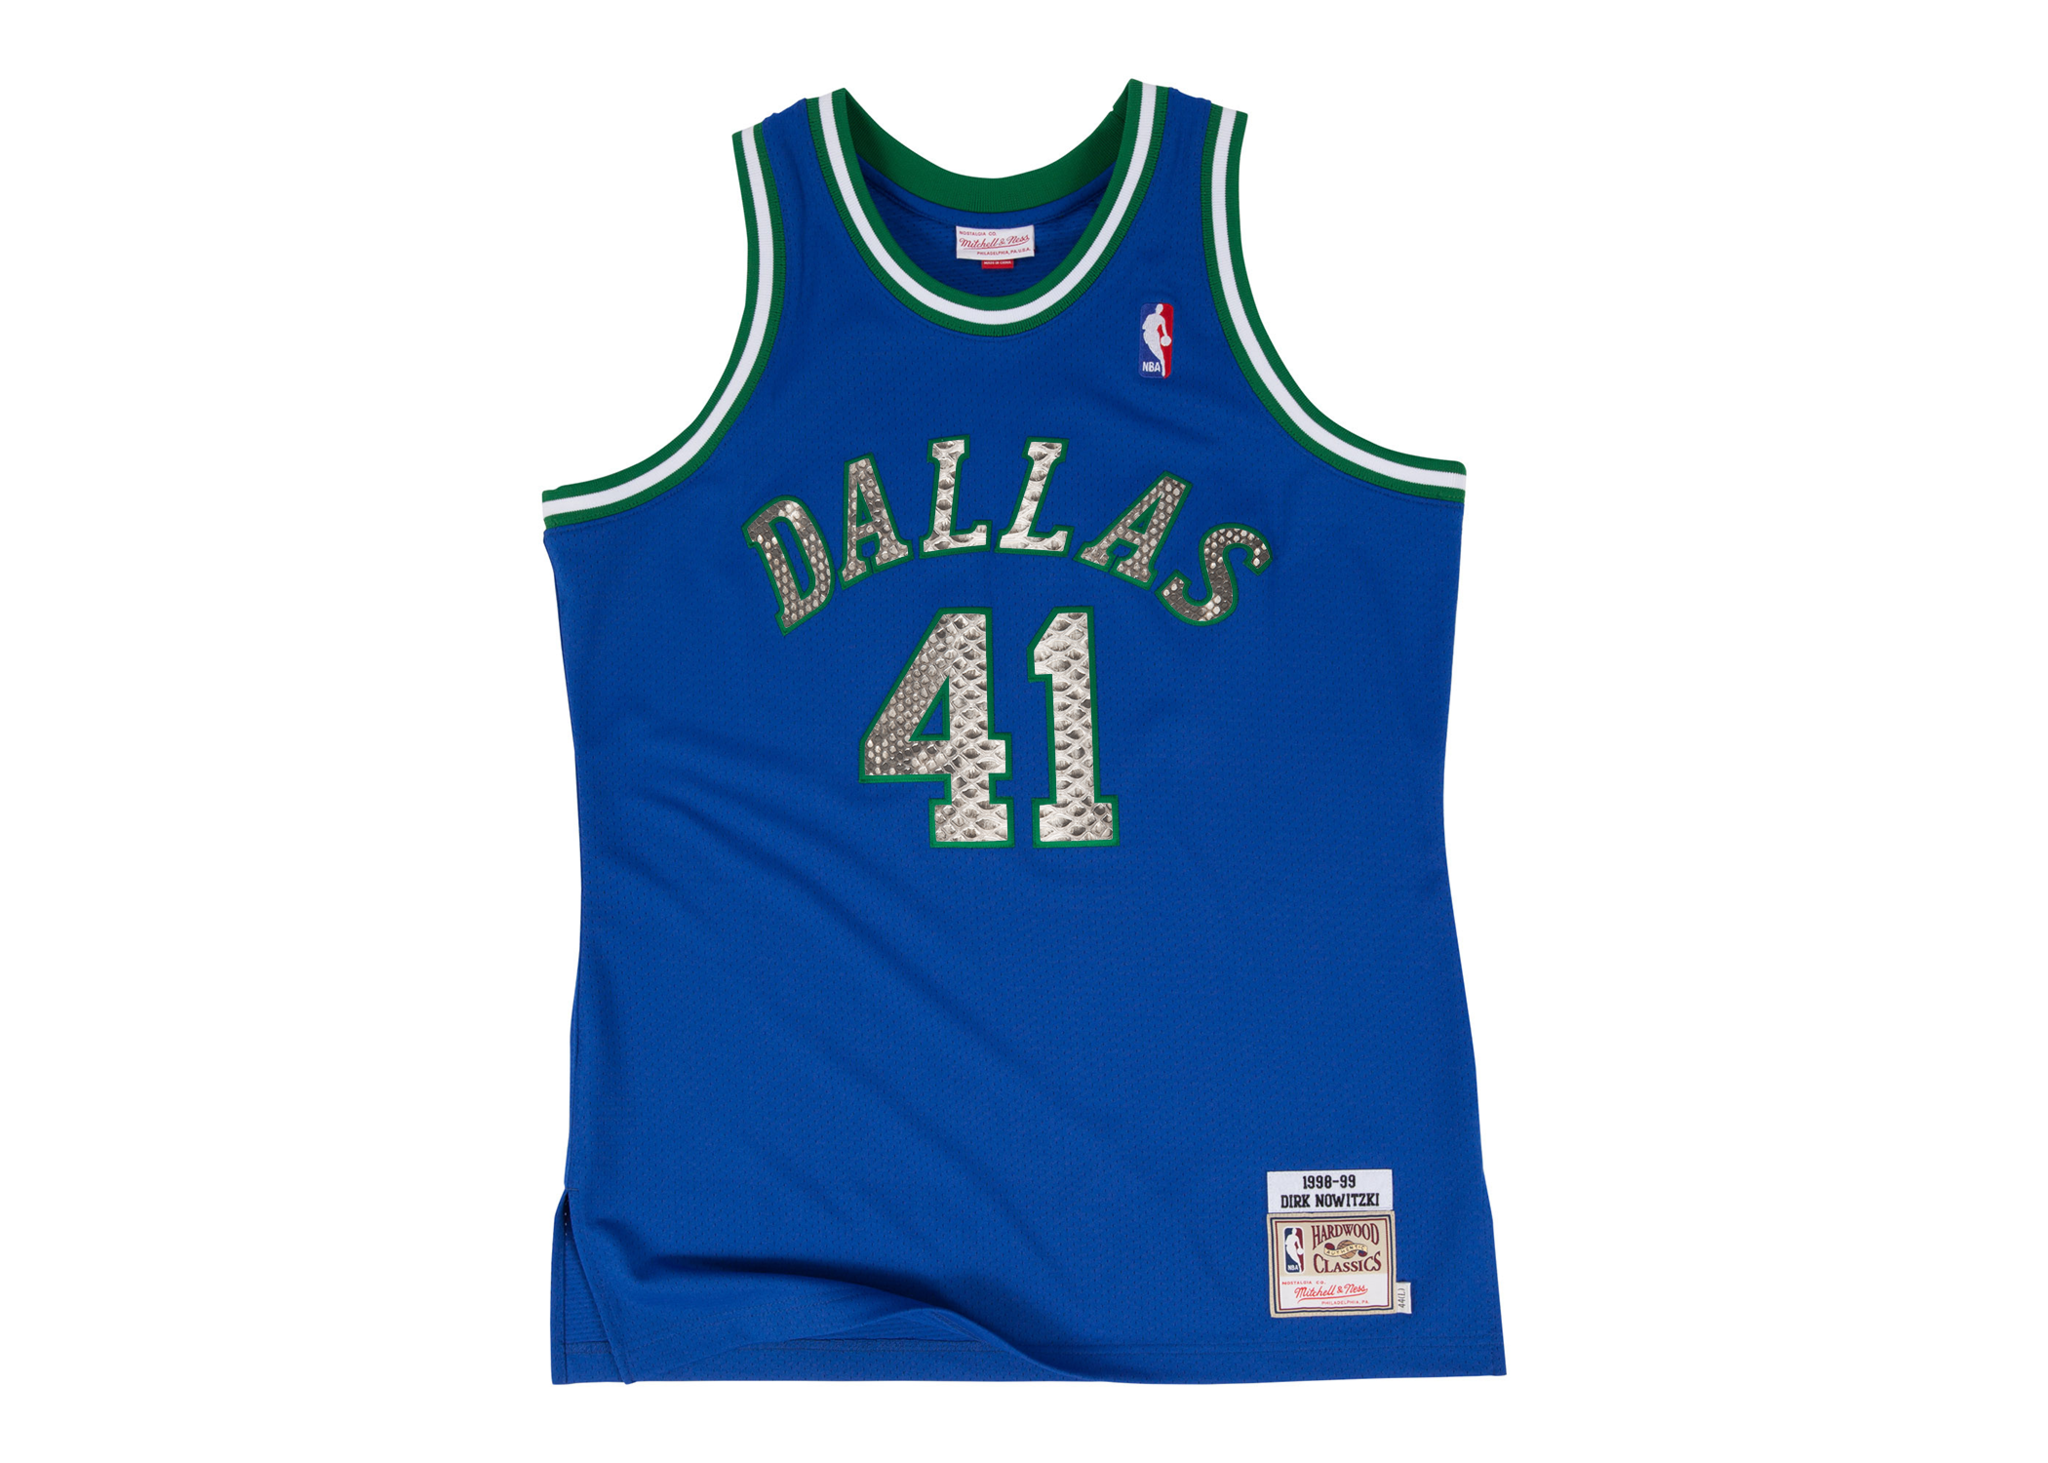 Mitchell & Ness Dirk Nowitzki 1998-1999 Dallas Mavericks Python Jersey